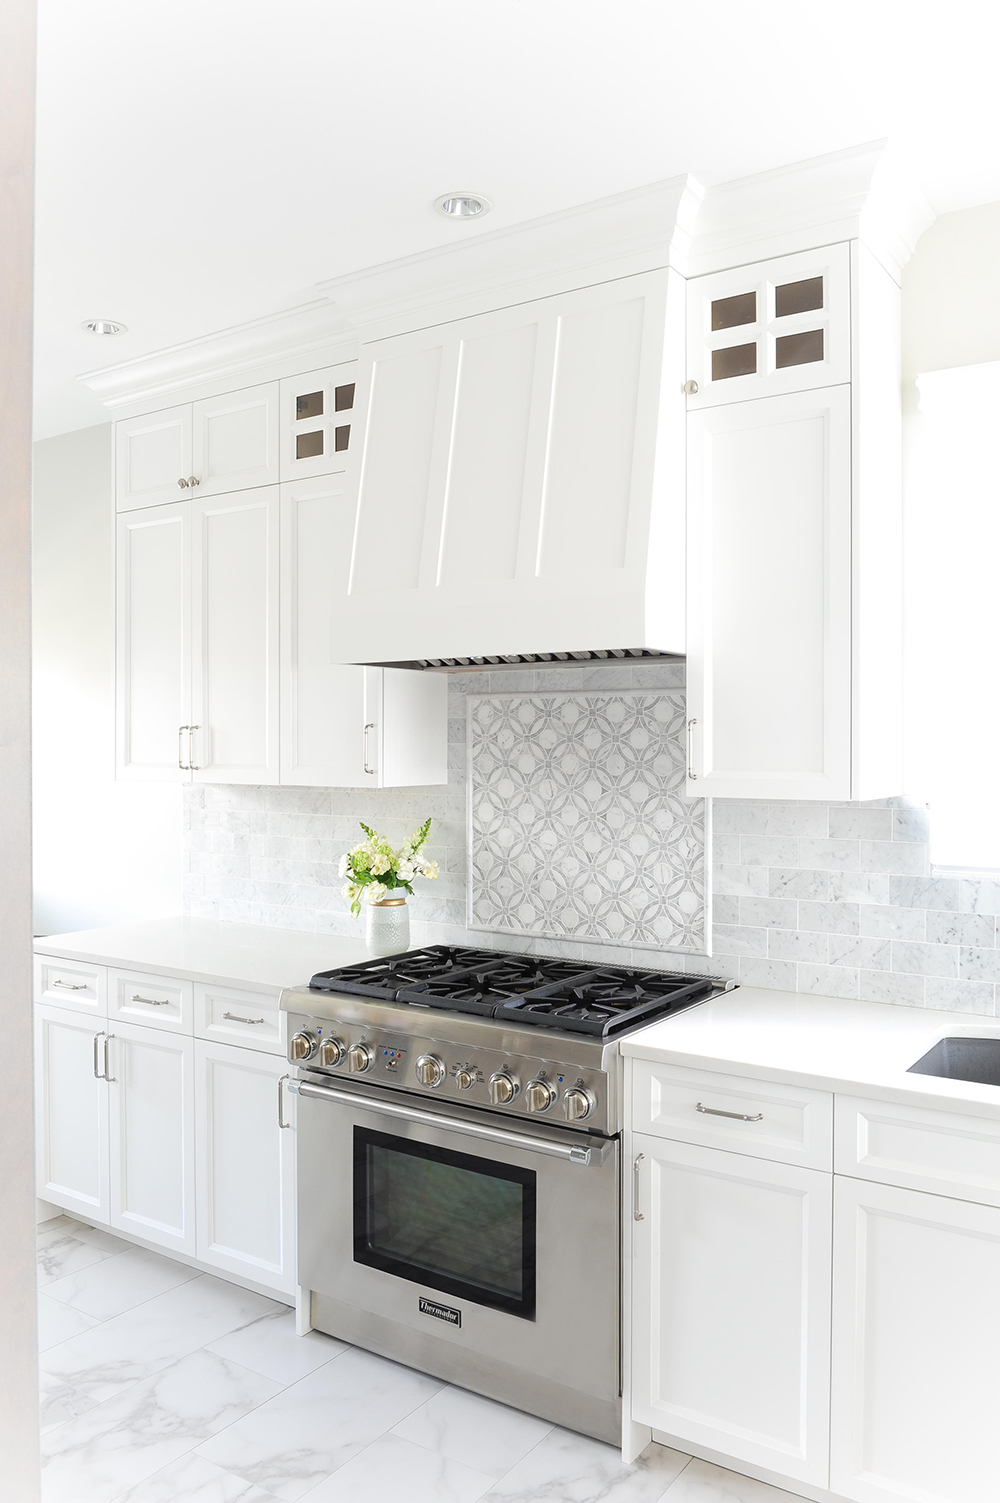 15 Range Hood Design Ideas That are Anything but Eyesores